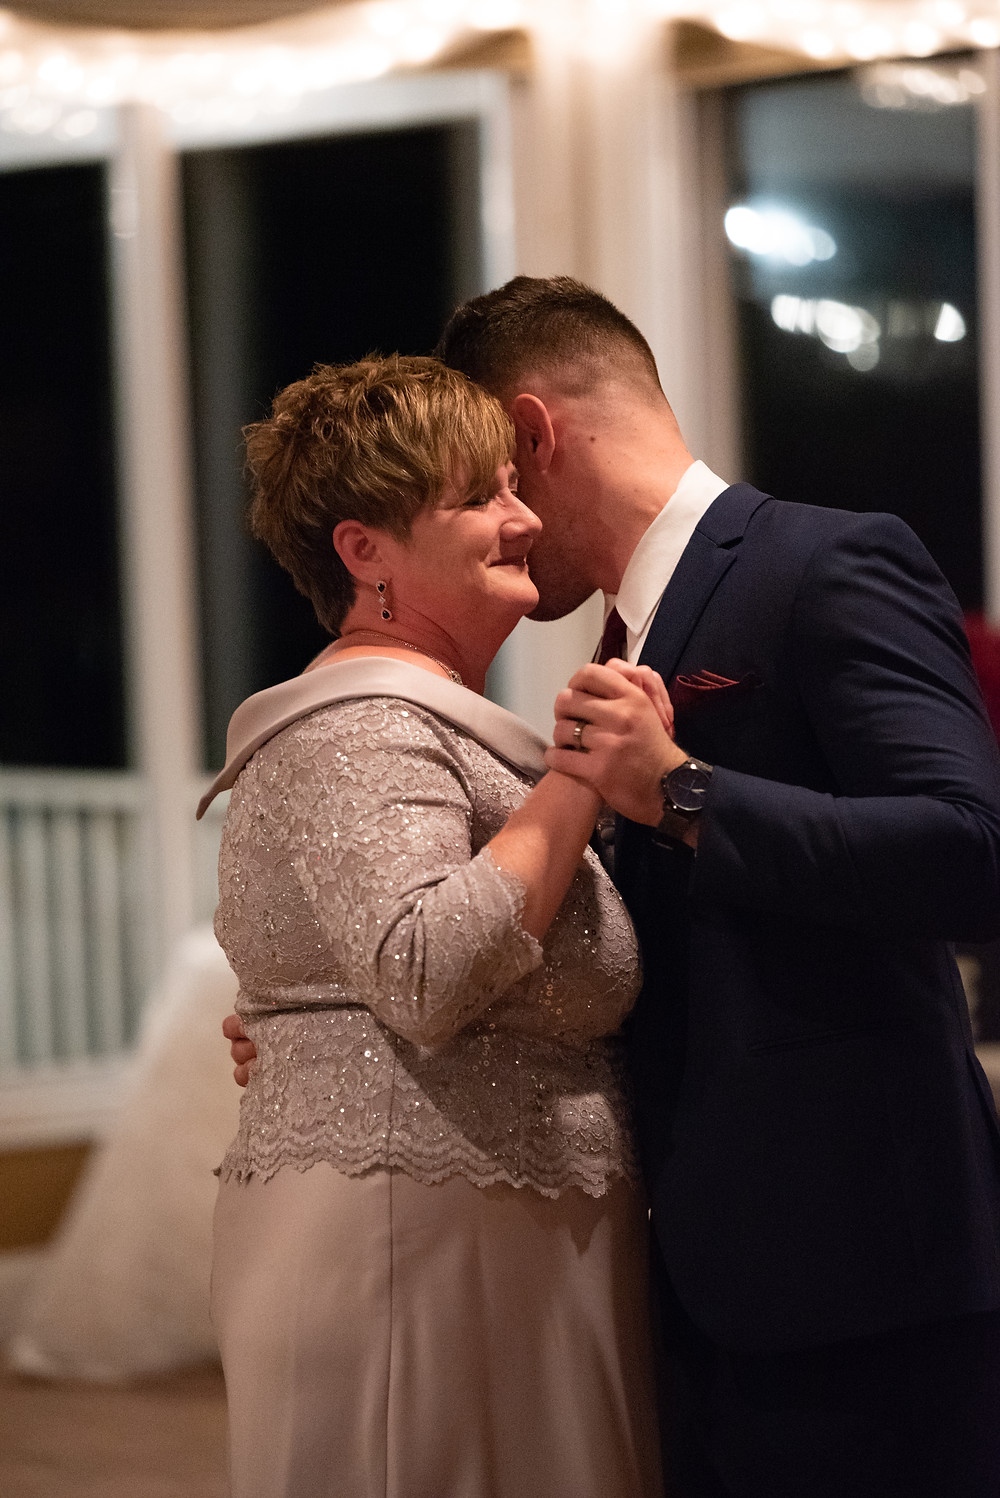 Mother and son dance during the wedding reception